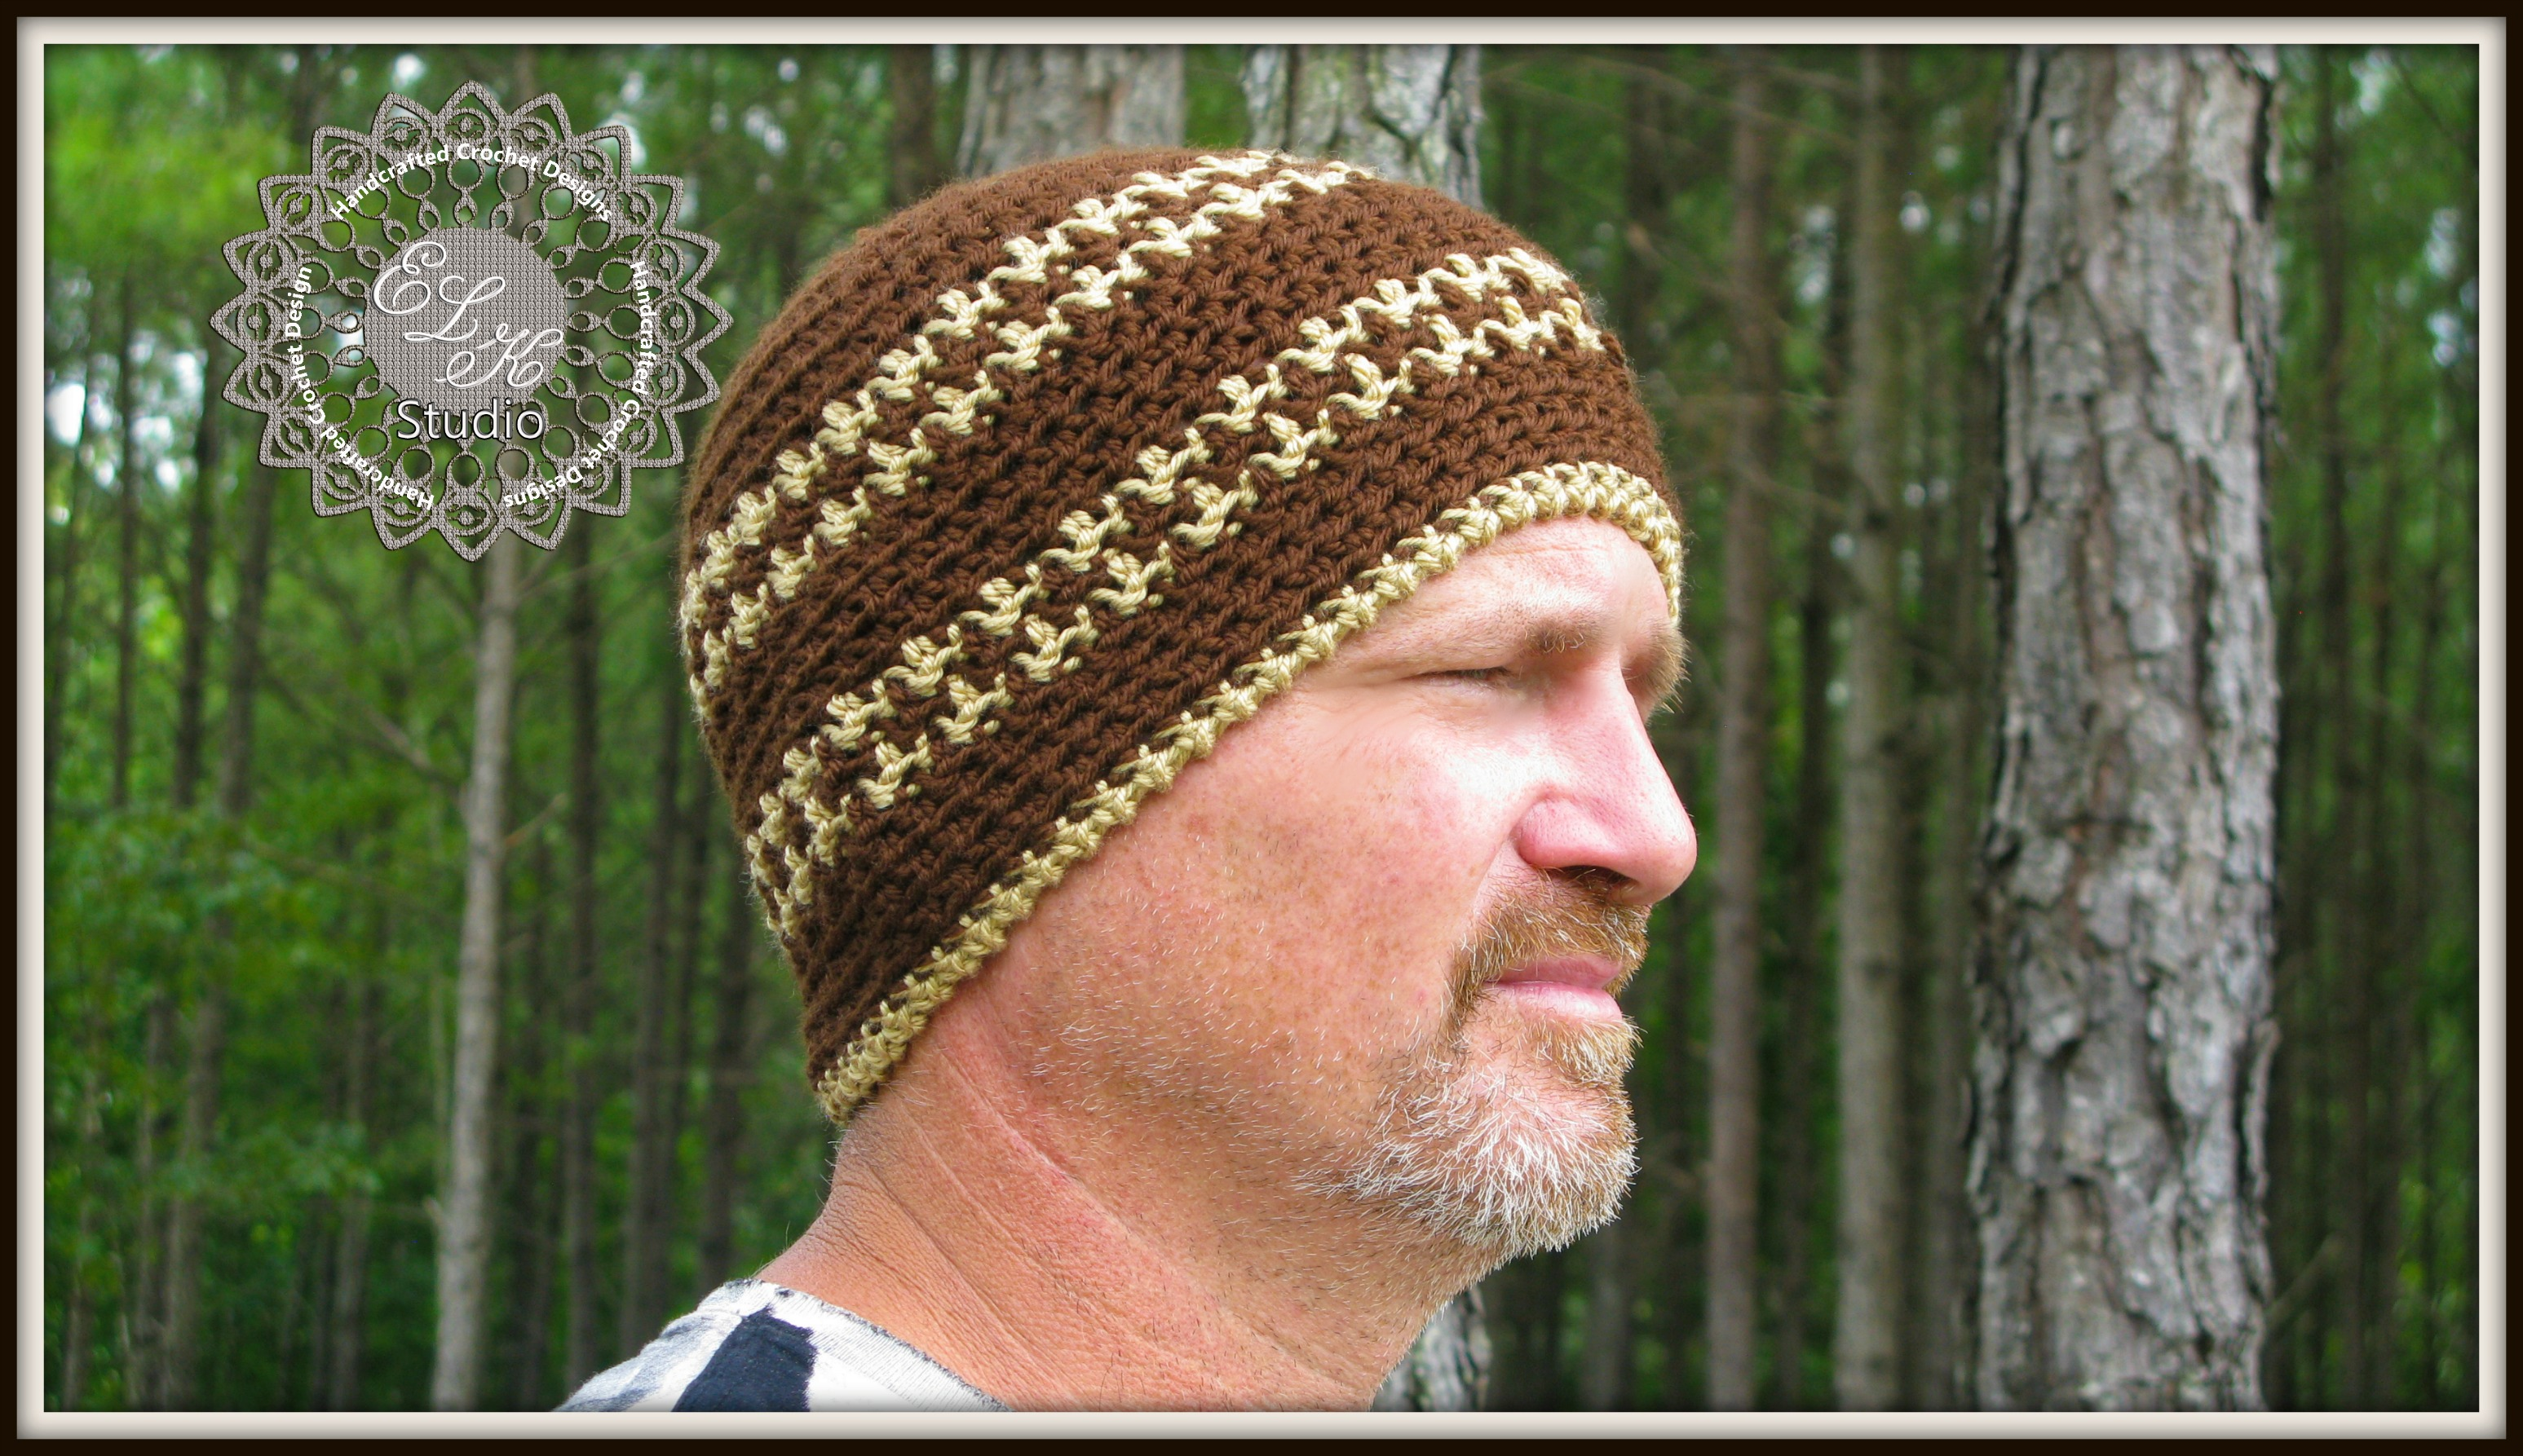 Free Crochet Pattern Houndstooth Hat : Free Crochet Hounds Tooth Hat Pattern ELK Studio ...